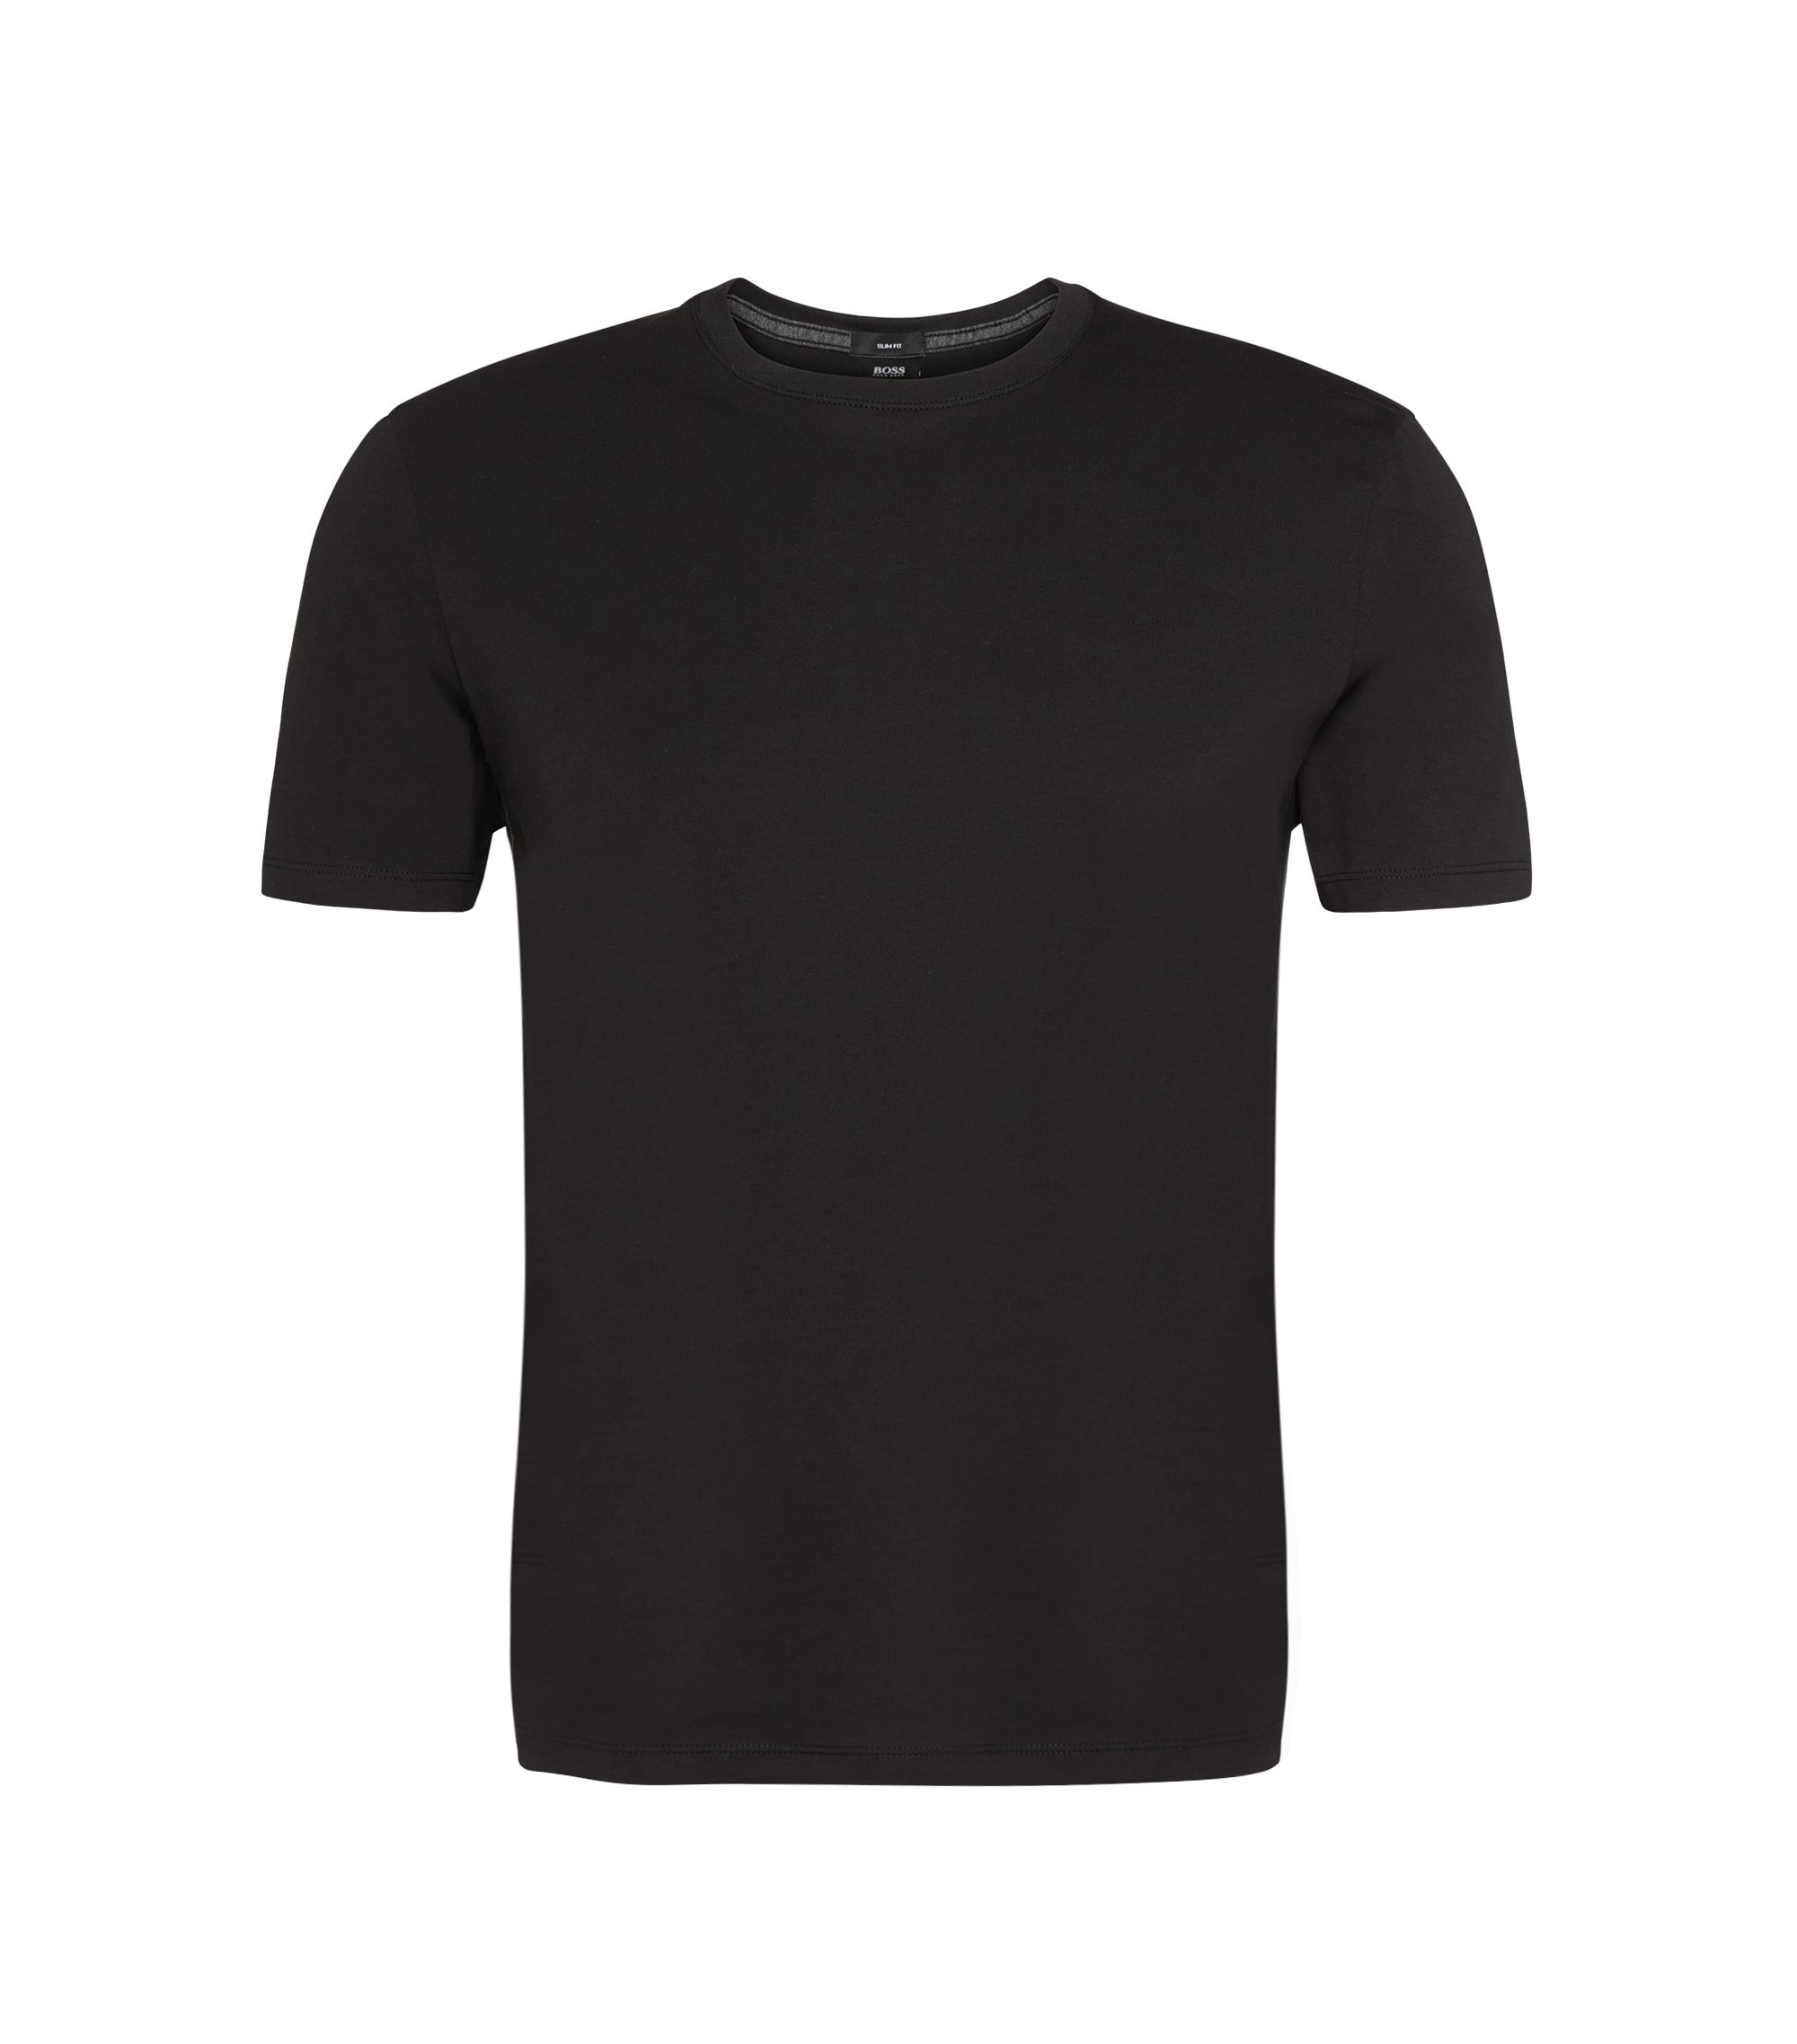 Slim-fit t-shirt in cotton: 'Tessler 09', Black